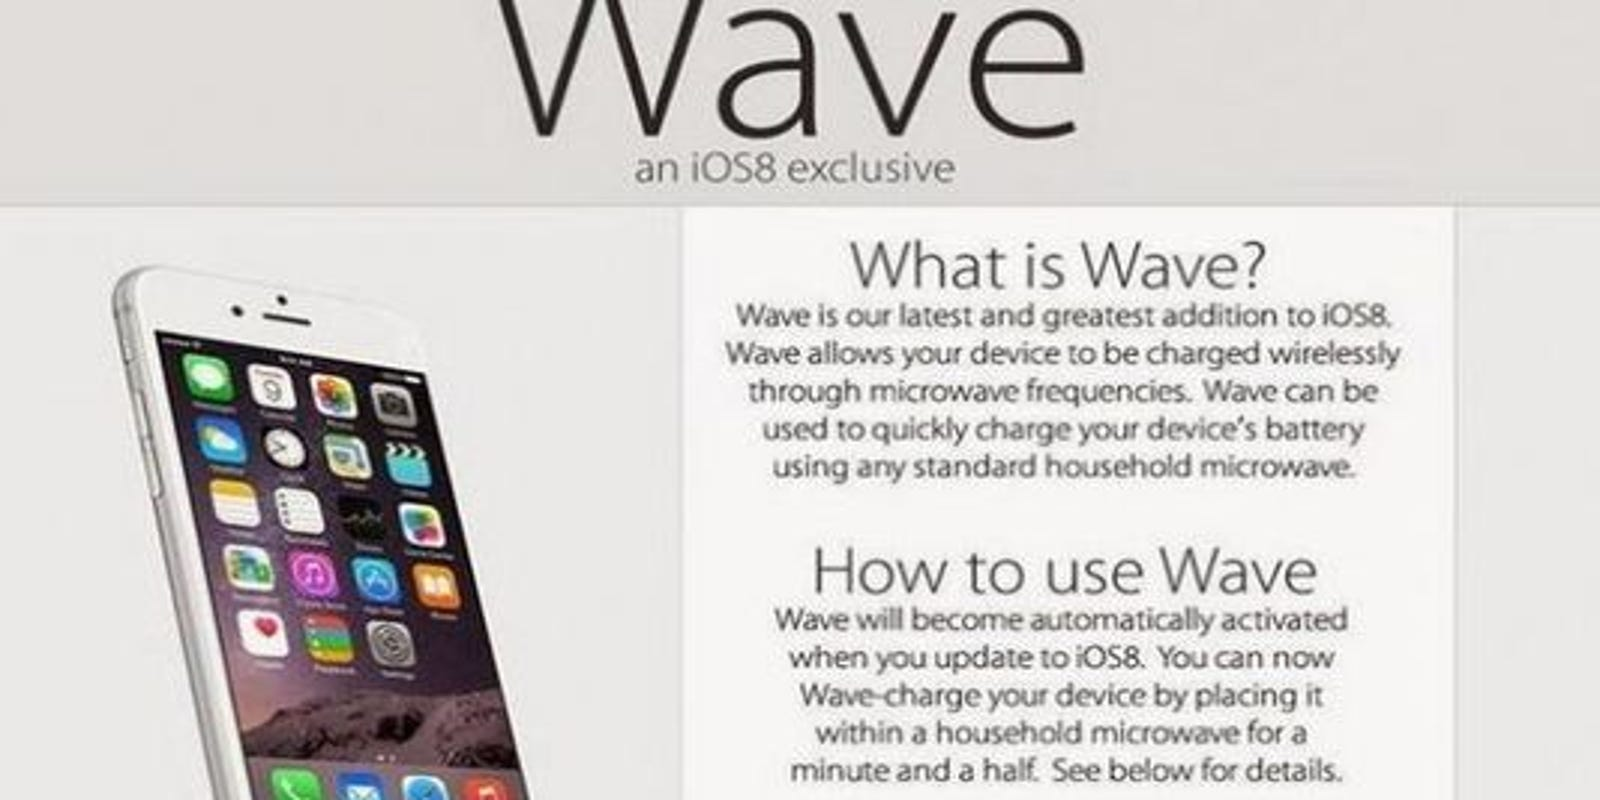 Warning for iPhone users: iOS 8 Wave a hoax